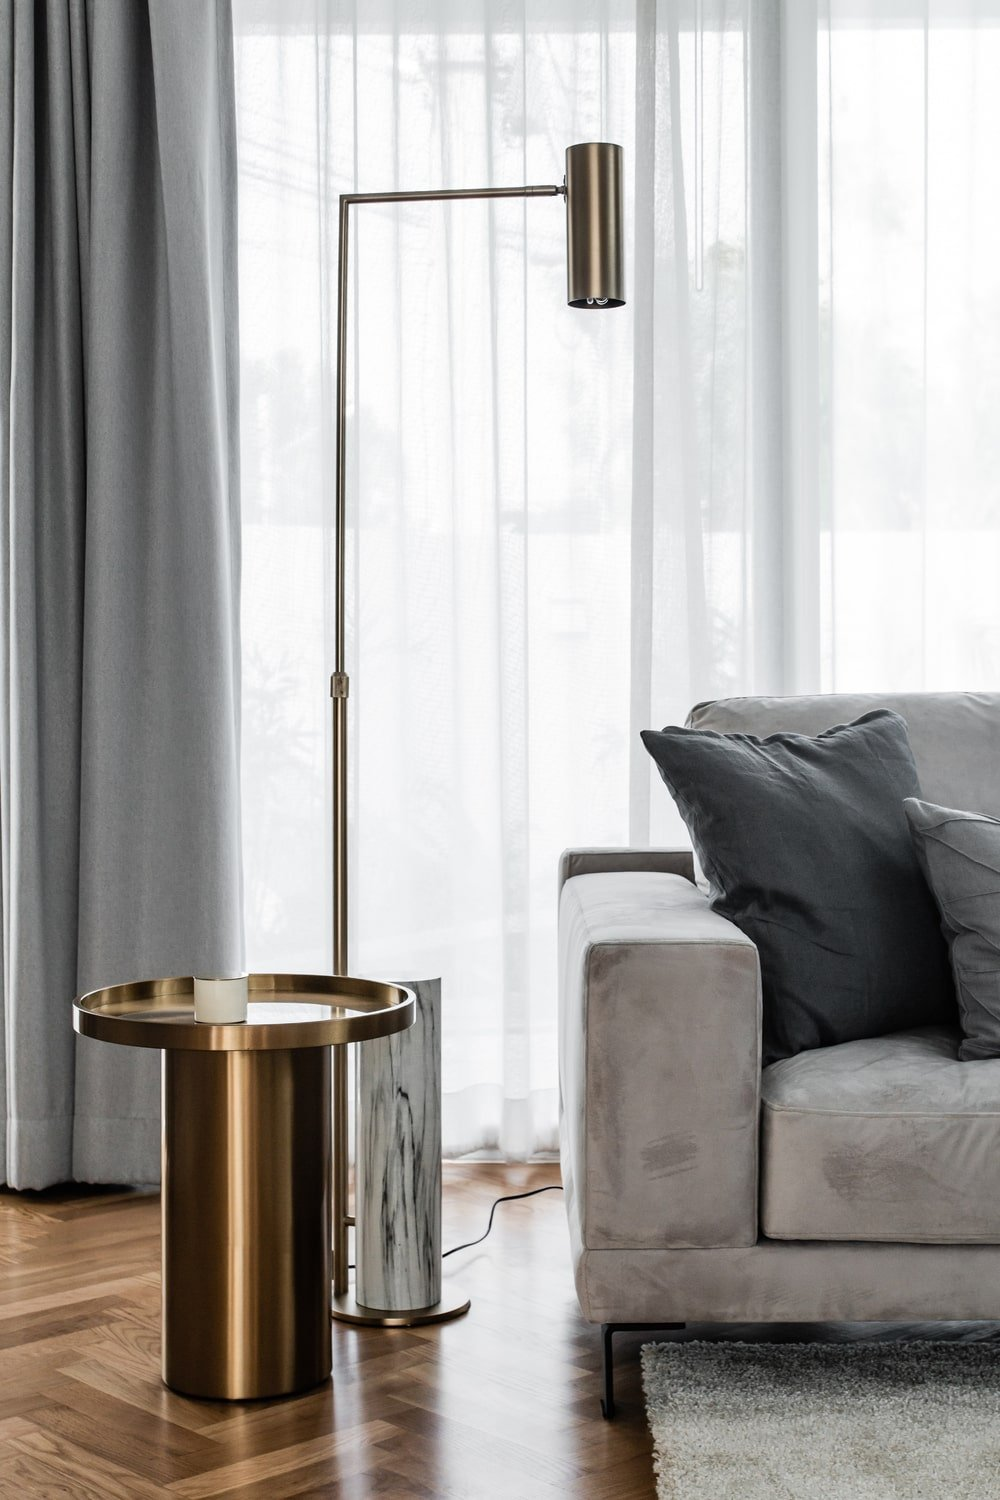 This is a close look at the end table of one of the sofas with a golden metallic tone to it.